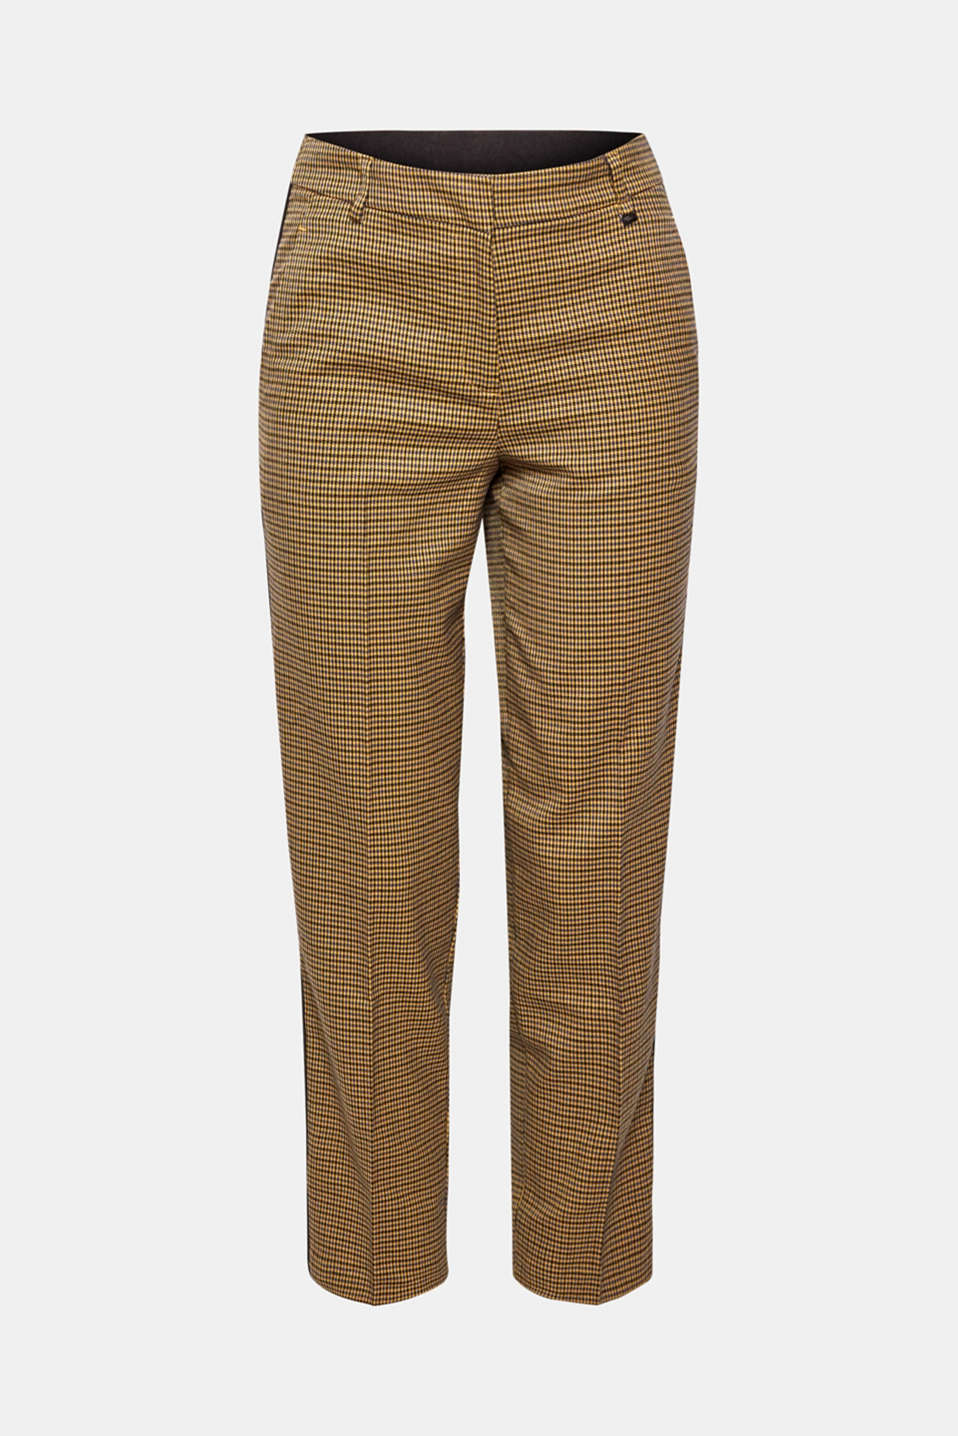 Stretch trousers with a houndstooth pattern and racing stripes, BARK, detail image number 8